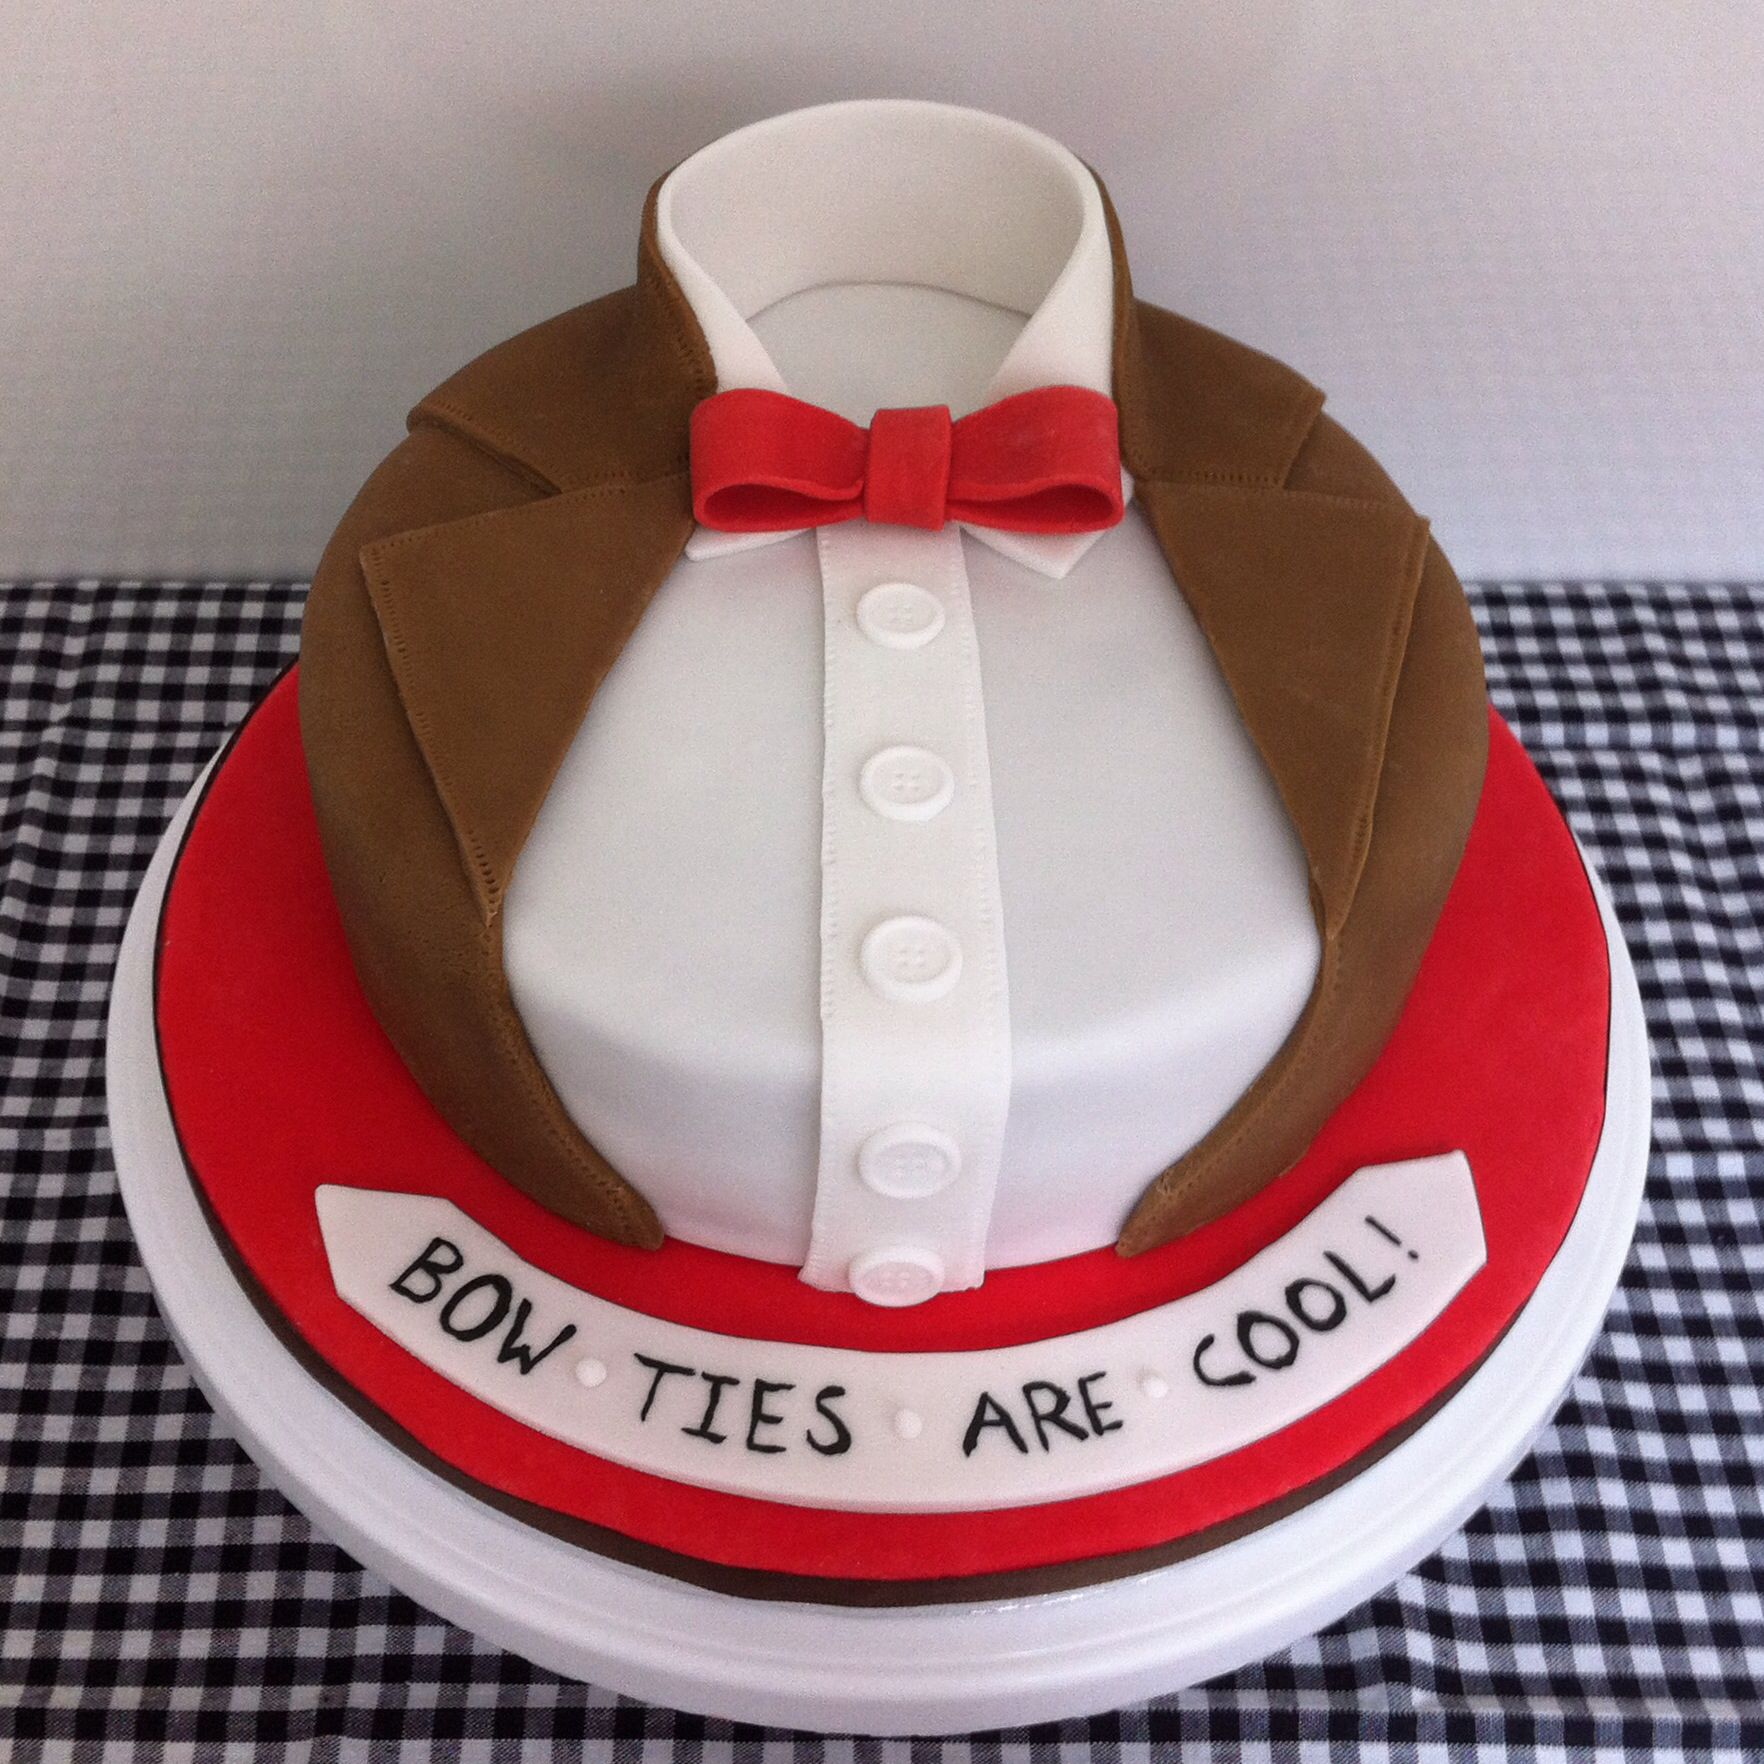 Doctor Who Bow Ties Are Cool Cake Recipes To Cook Pinterest